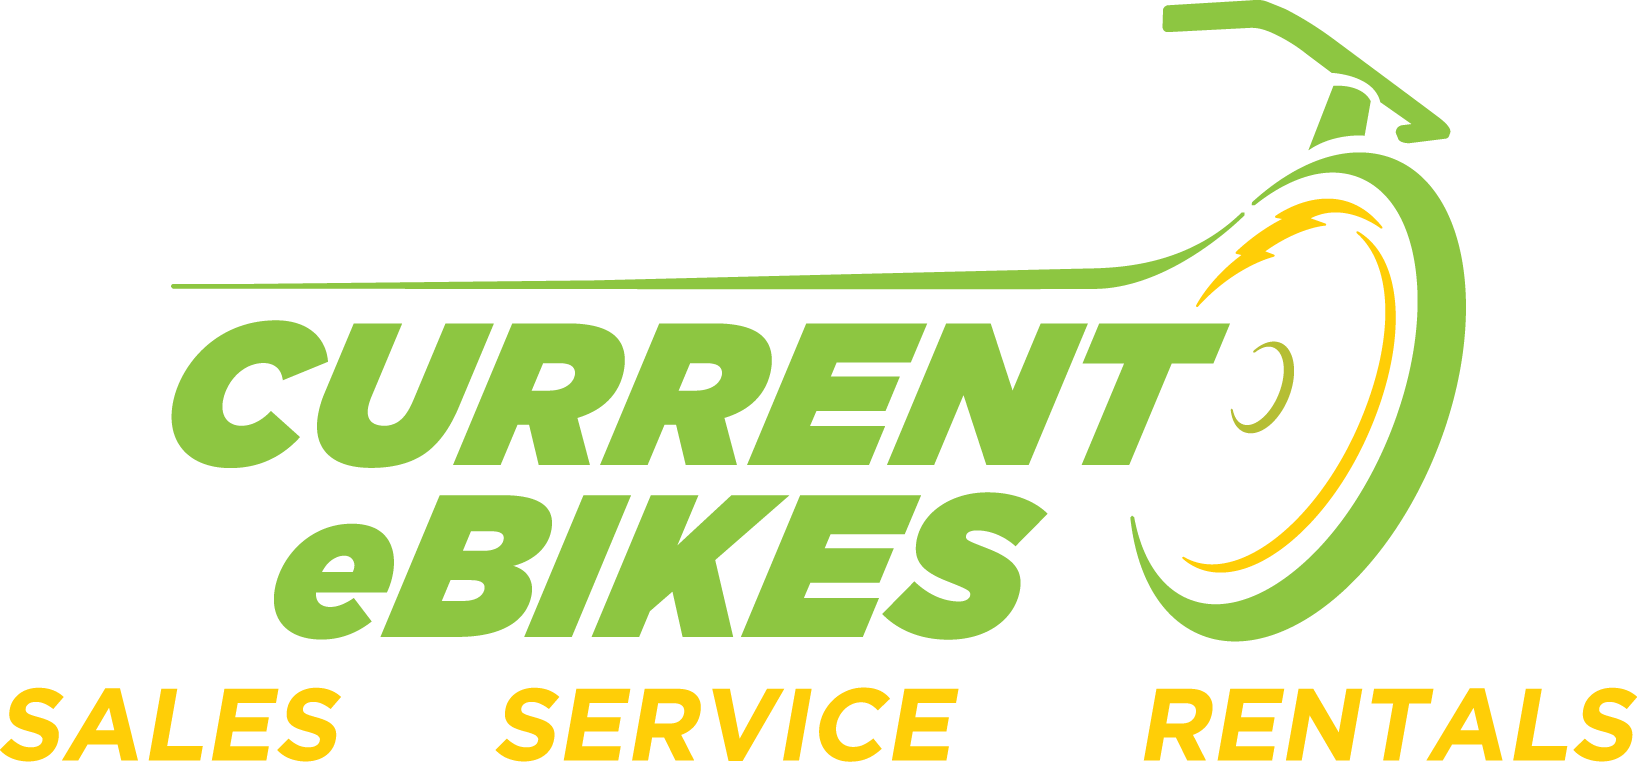 Logo Corrected Color.png